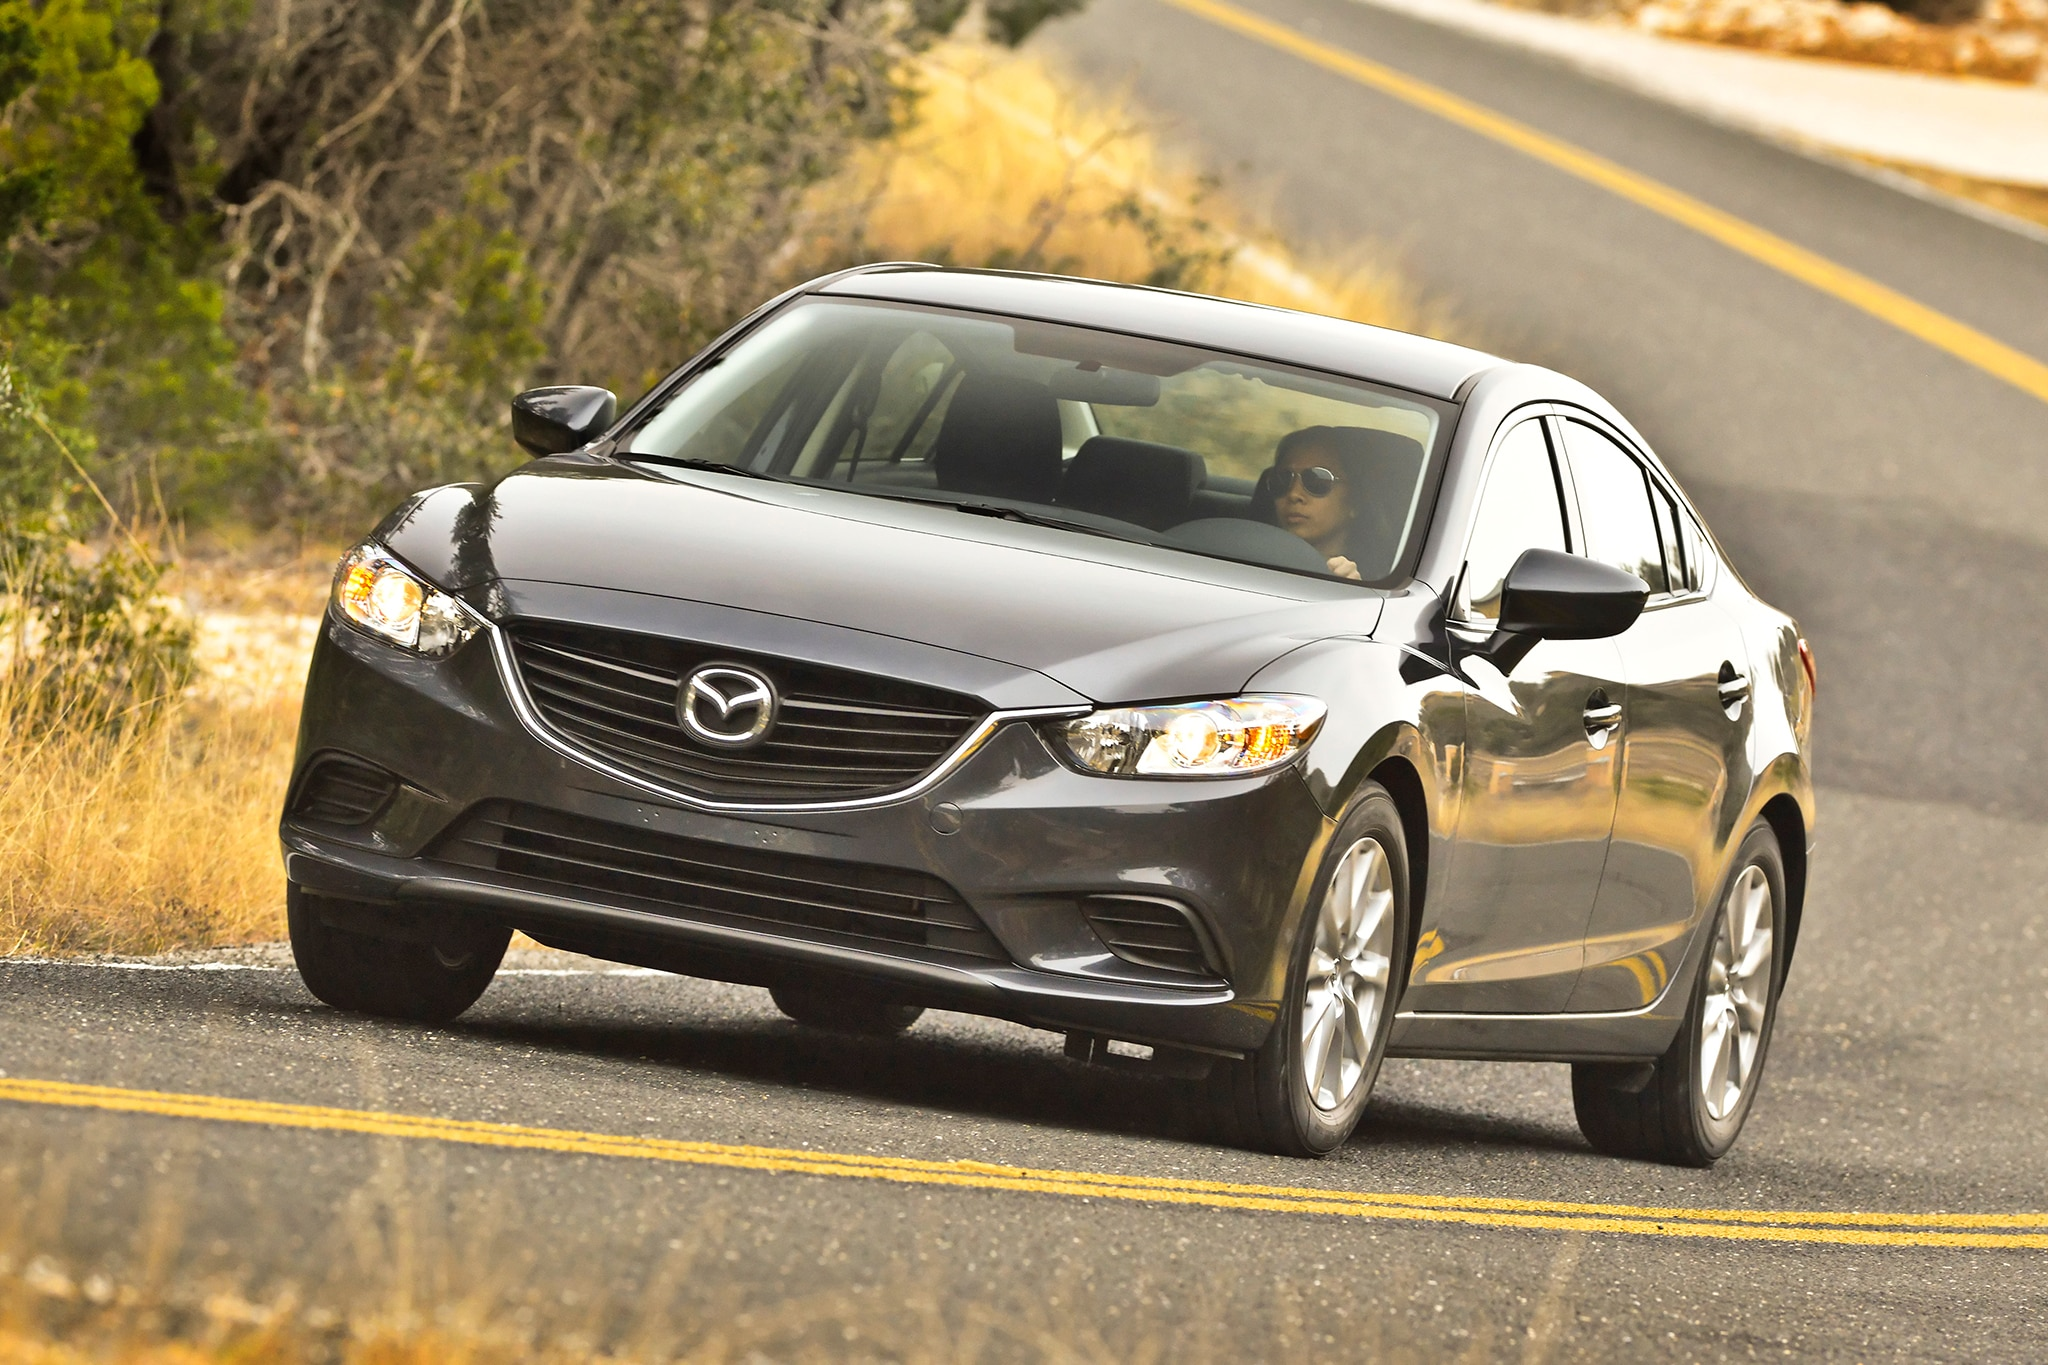 2014 Mazda6 Sport Front Three Quarters View1